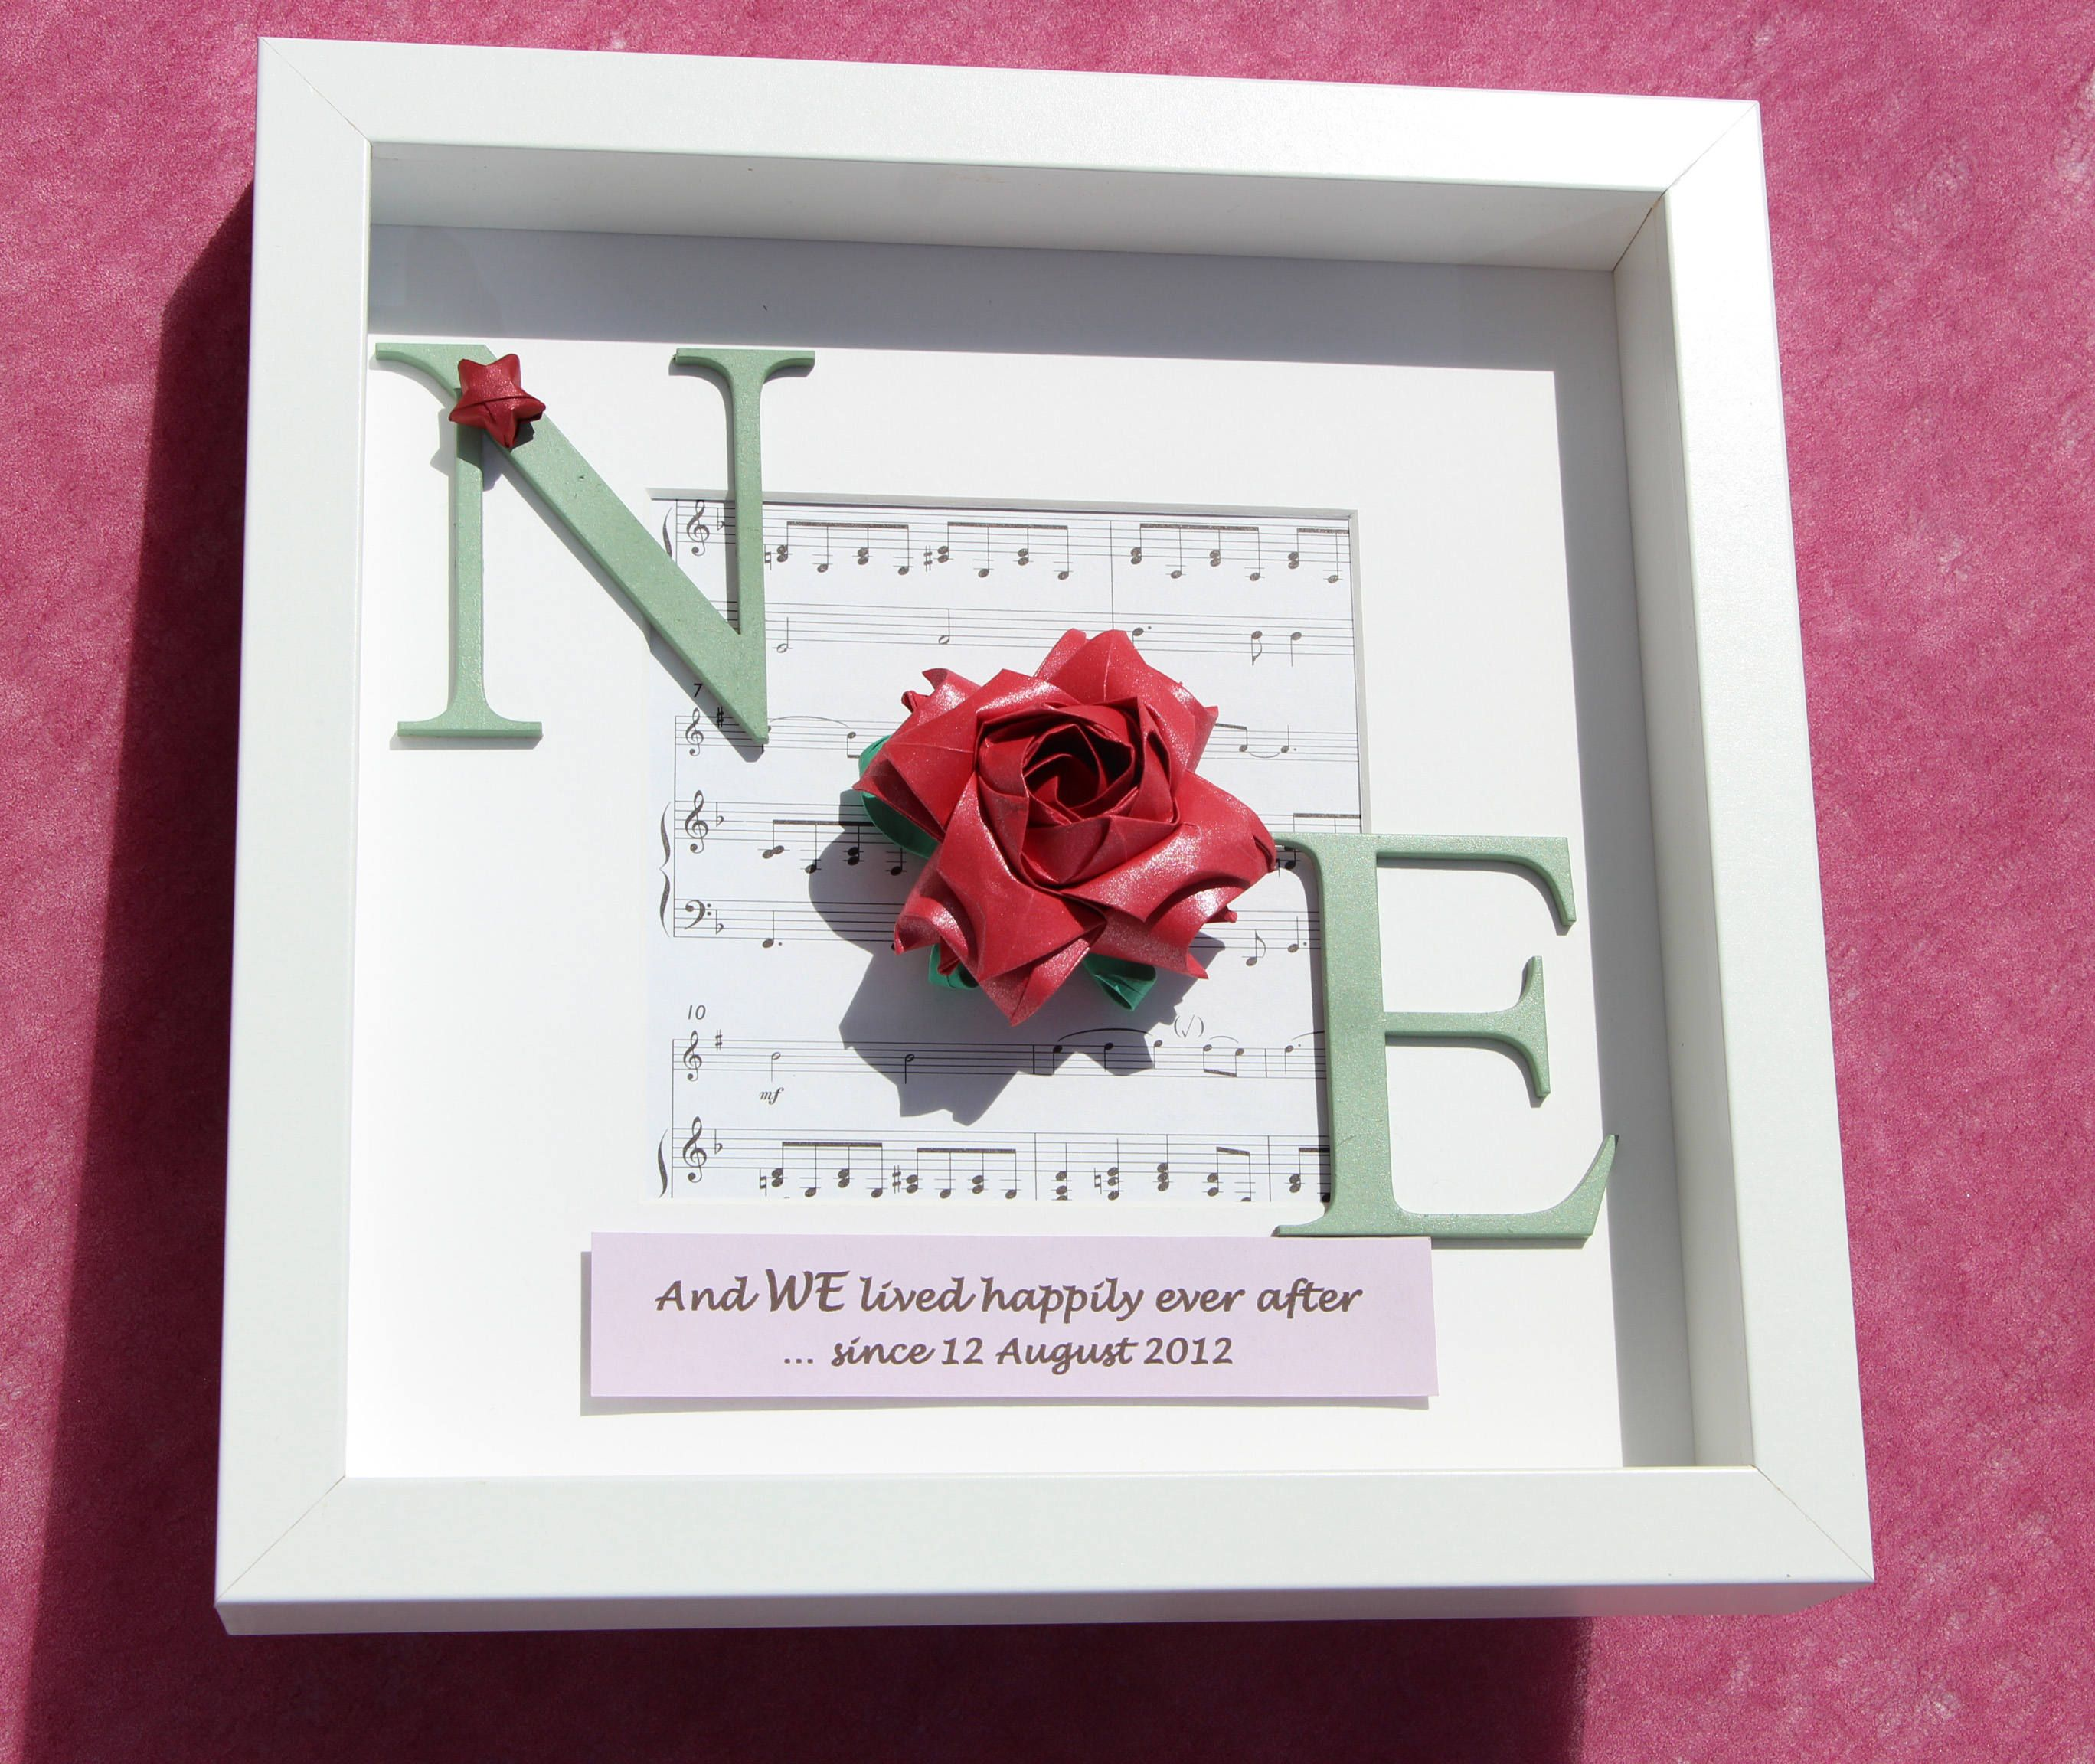 First 1st paper / 4th Flower Wedding Anniversary Gift Frame, Red ...